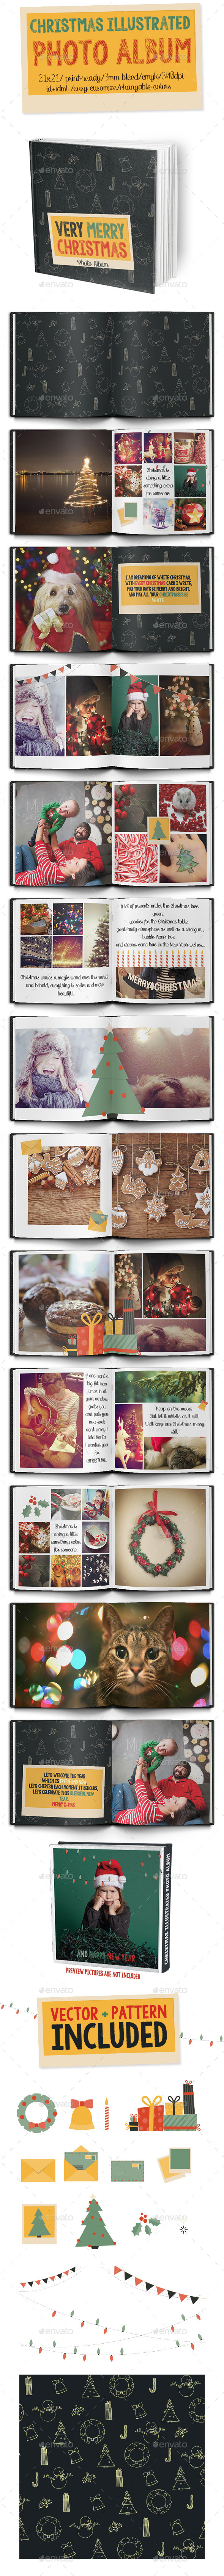 Christmas Illustrated Photo Album - Photo Albums Print Templates